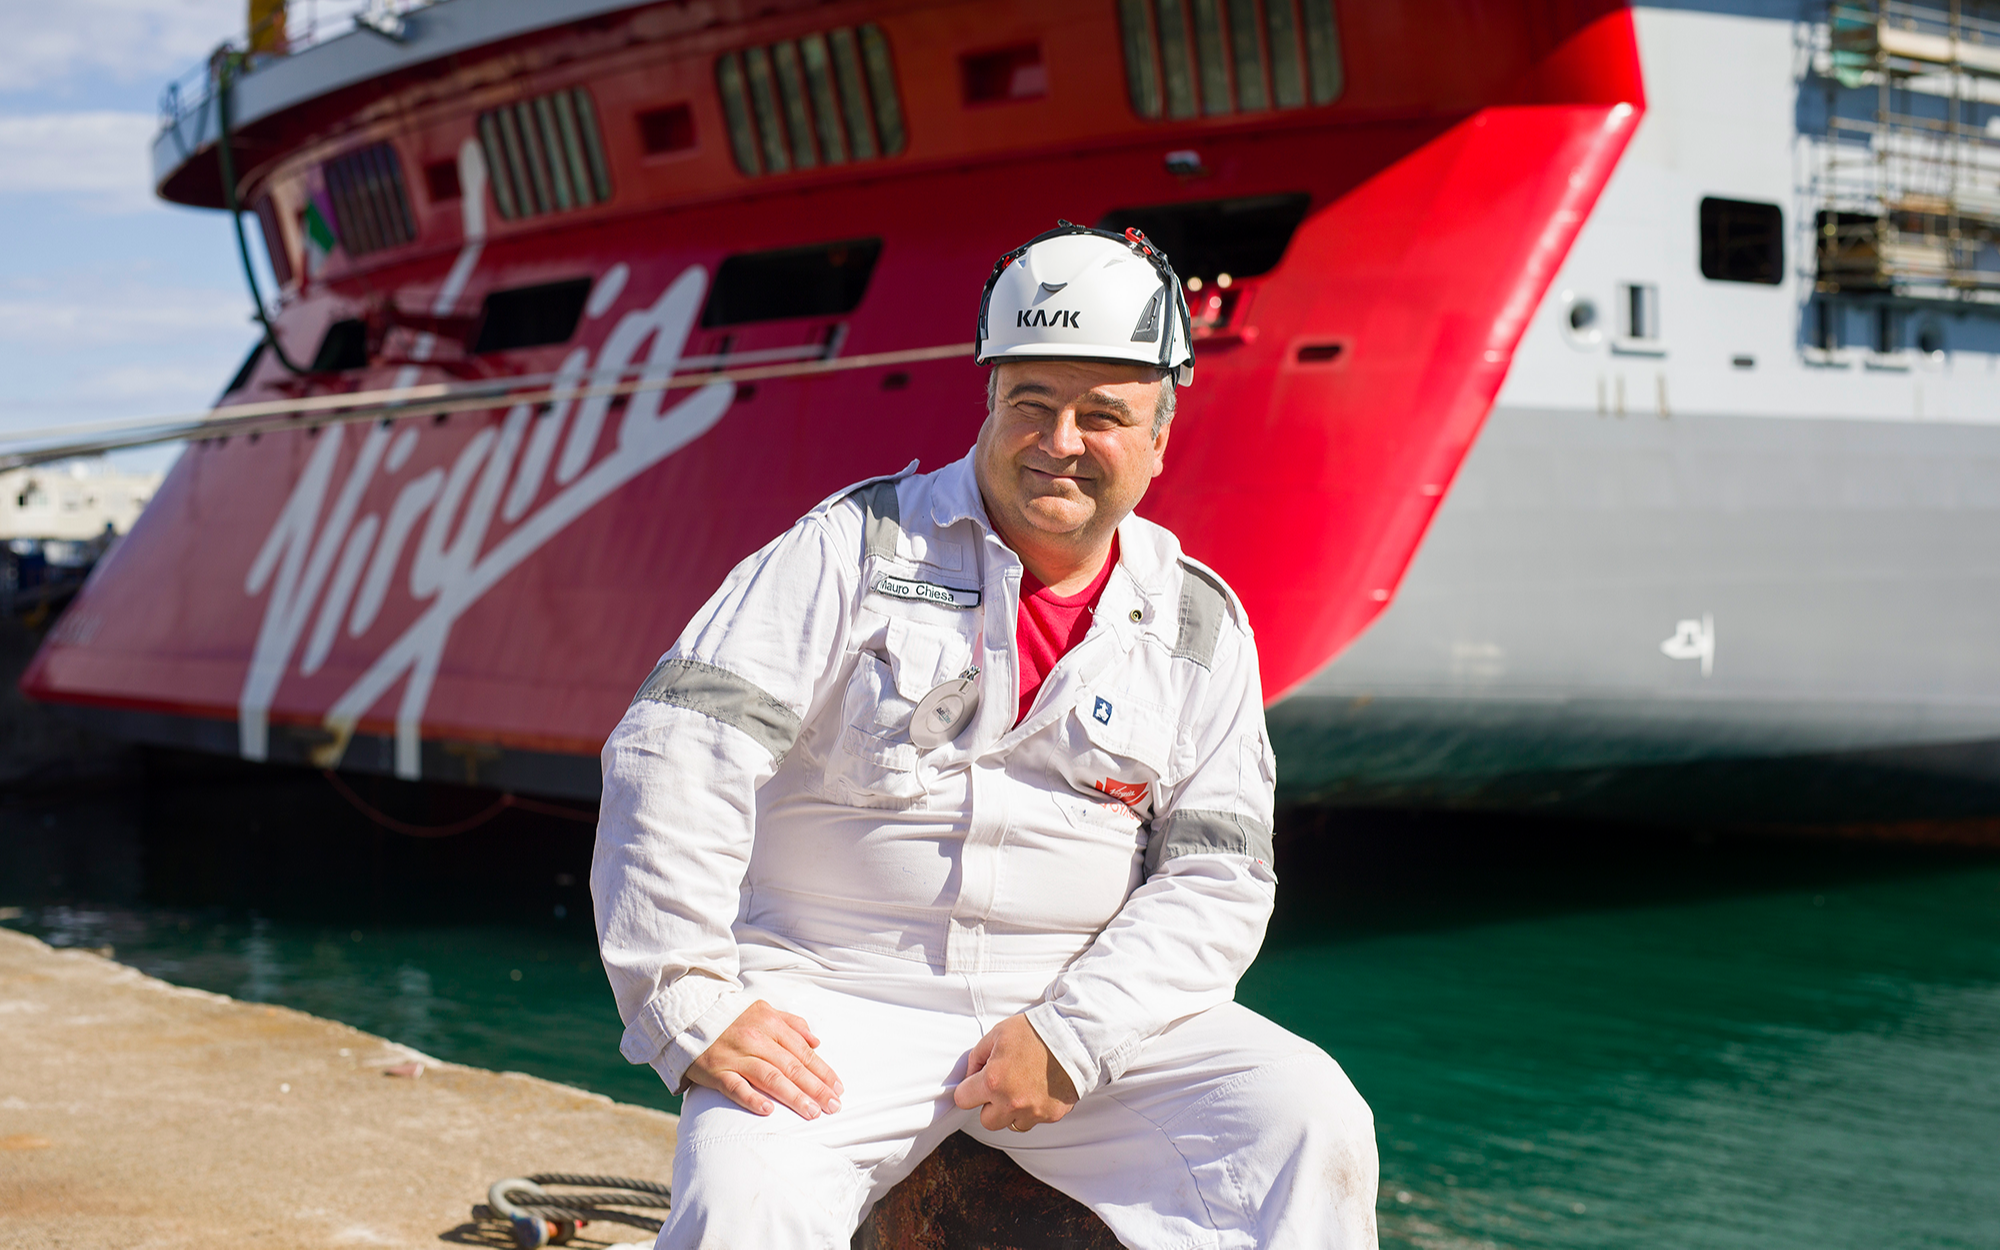 Virgin Voyages crew member - Mauro Chiesa - in front of the Scarlet Lady